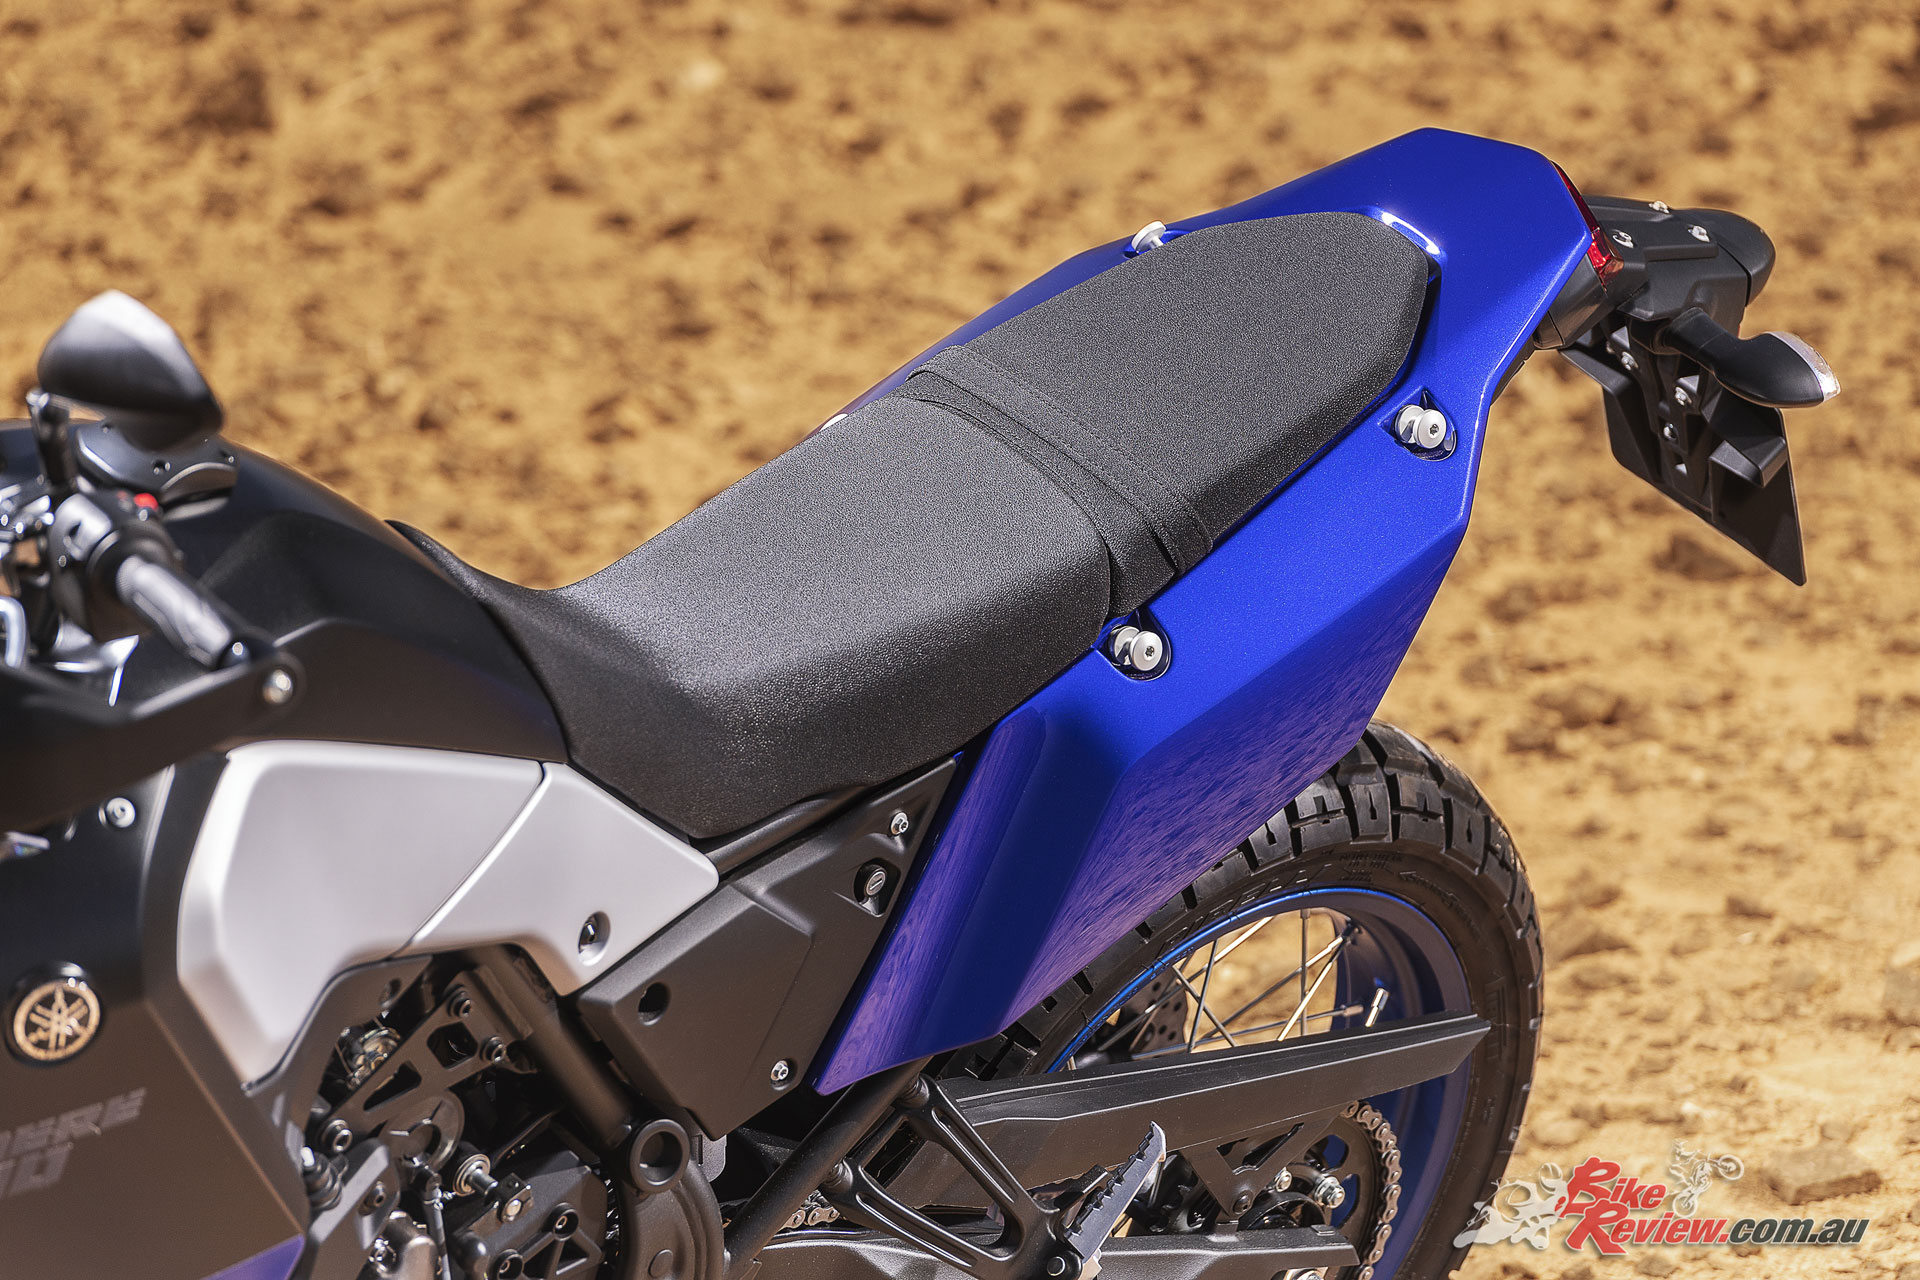 2019 Yamaha Tenere 700 - 880mm seat height